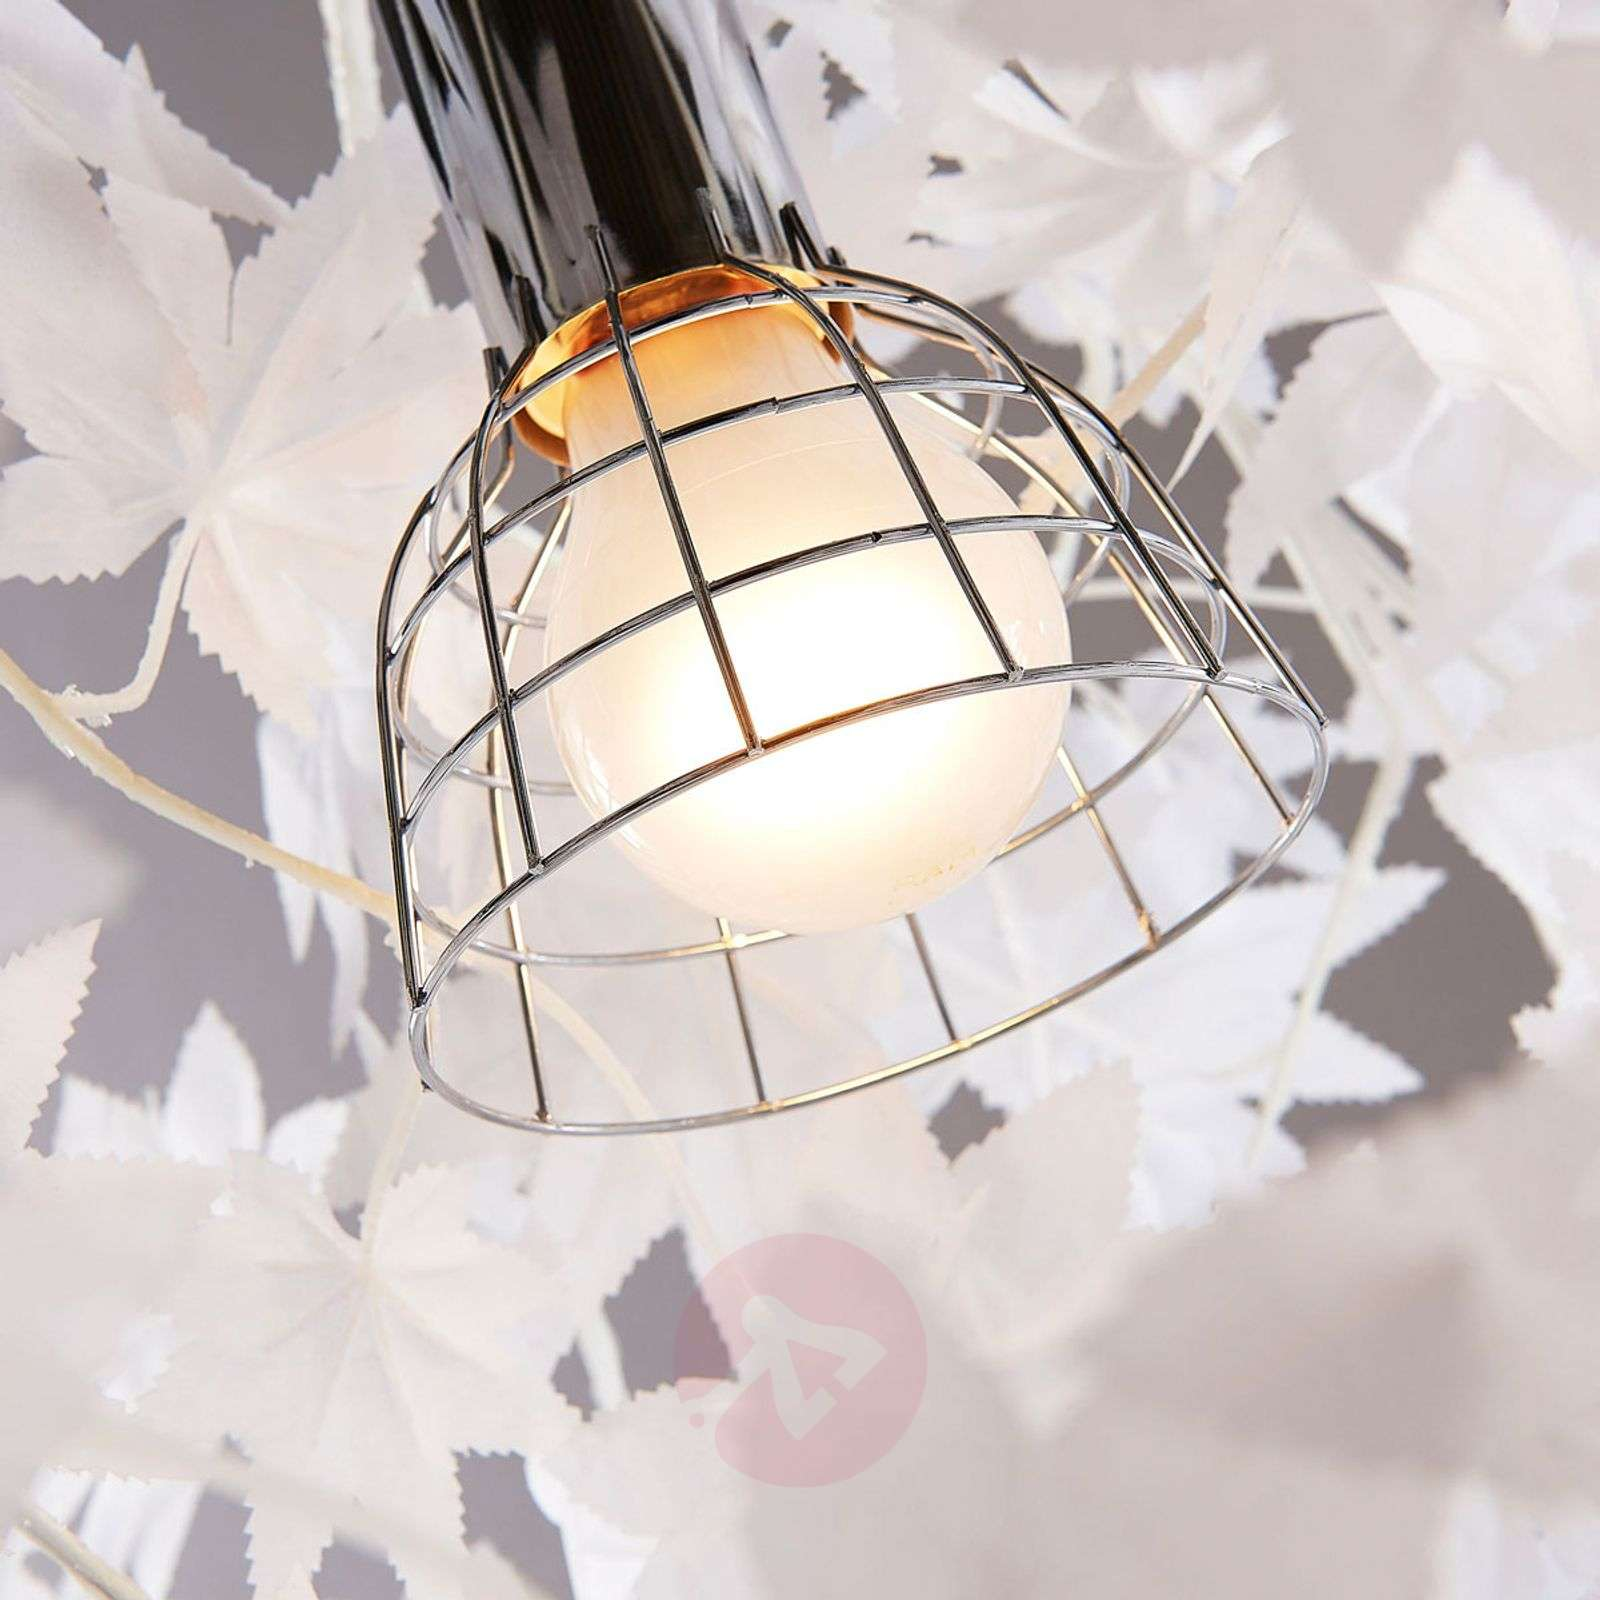 Pendant lamp Maple with leaf design-9621123-02